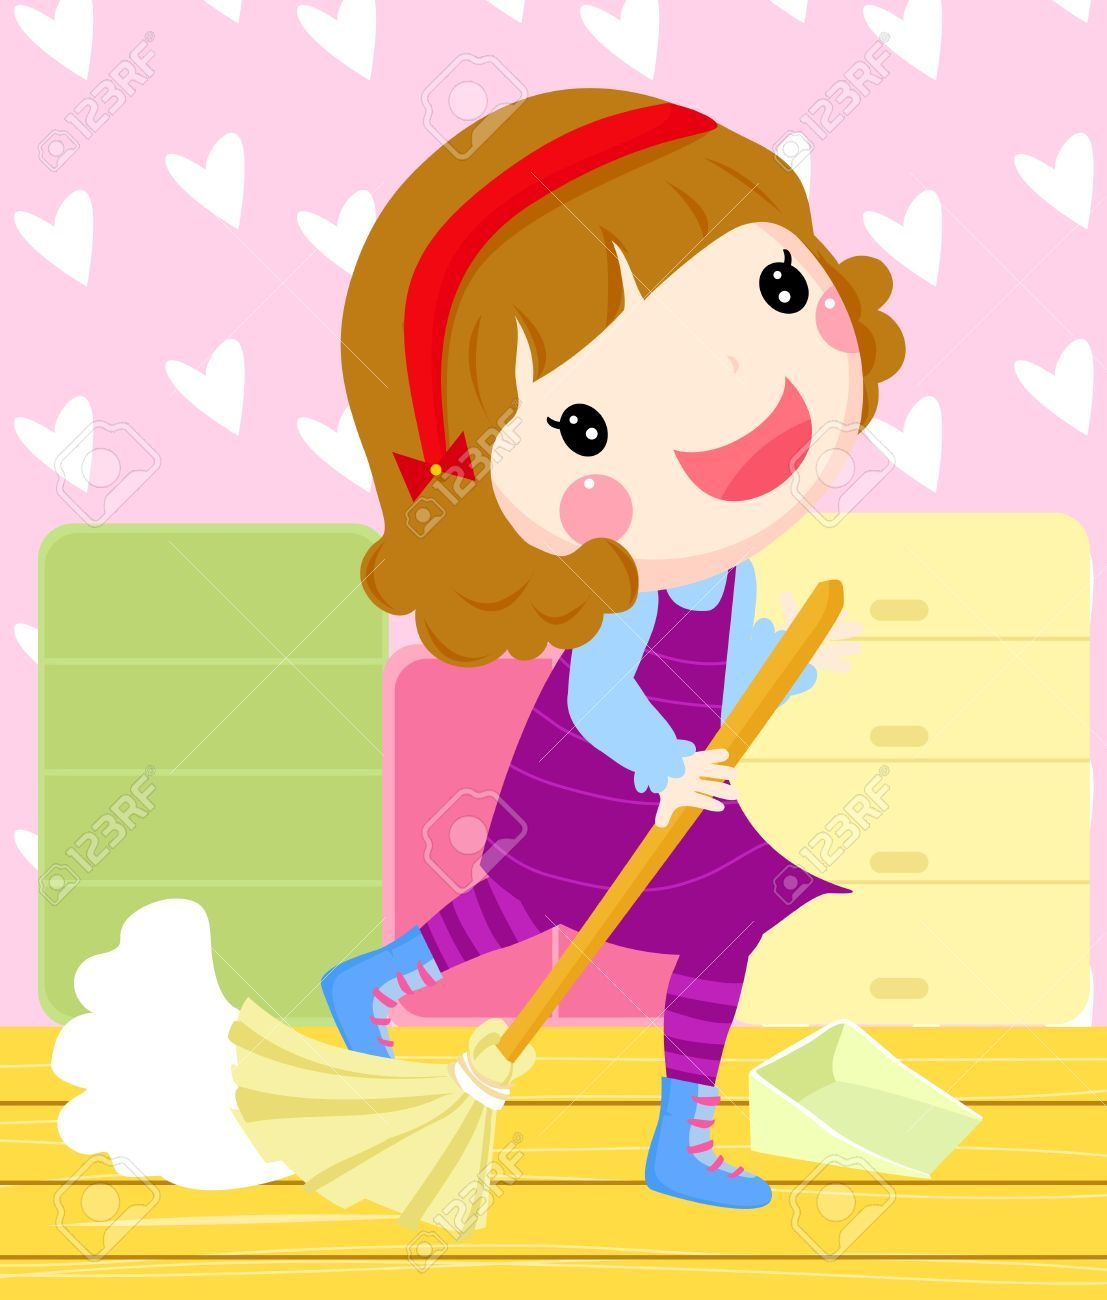 Cleaning bedroom clipart 3 » Clipart Portal.